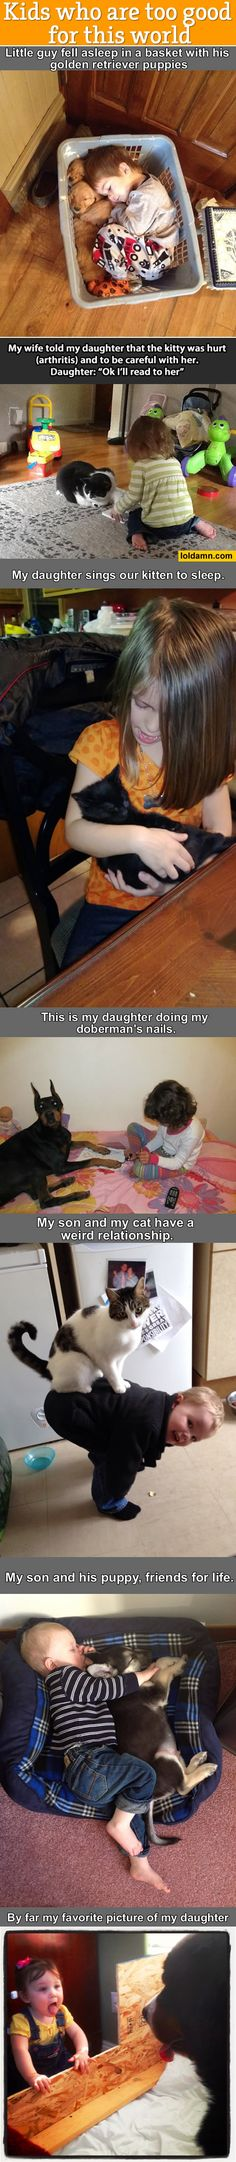 Kids and their pets...